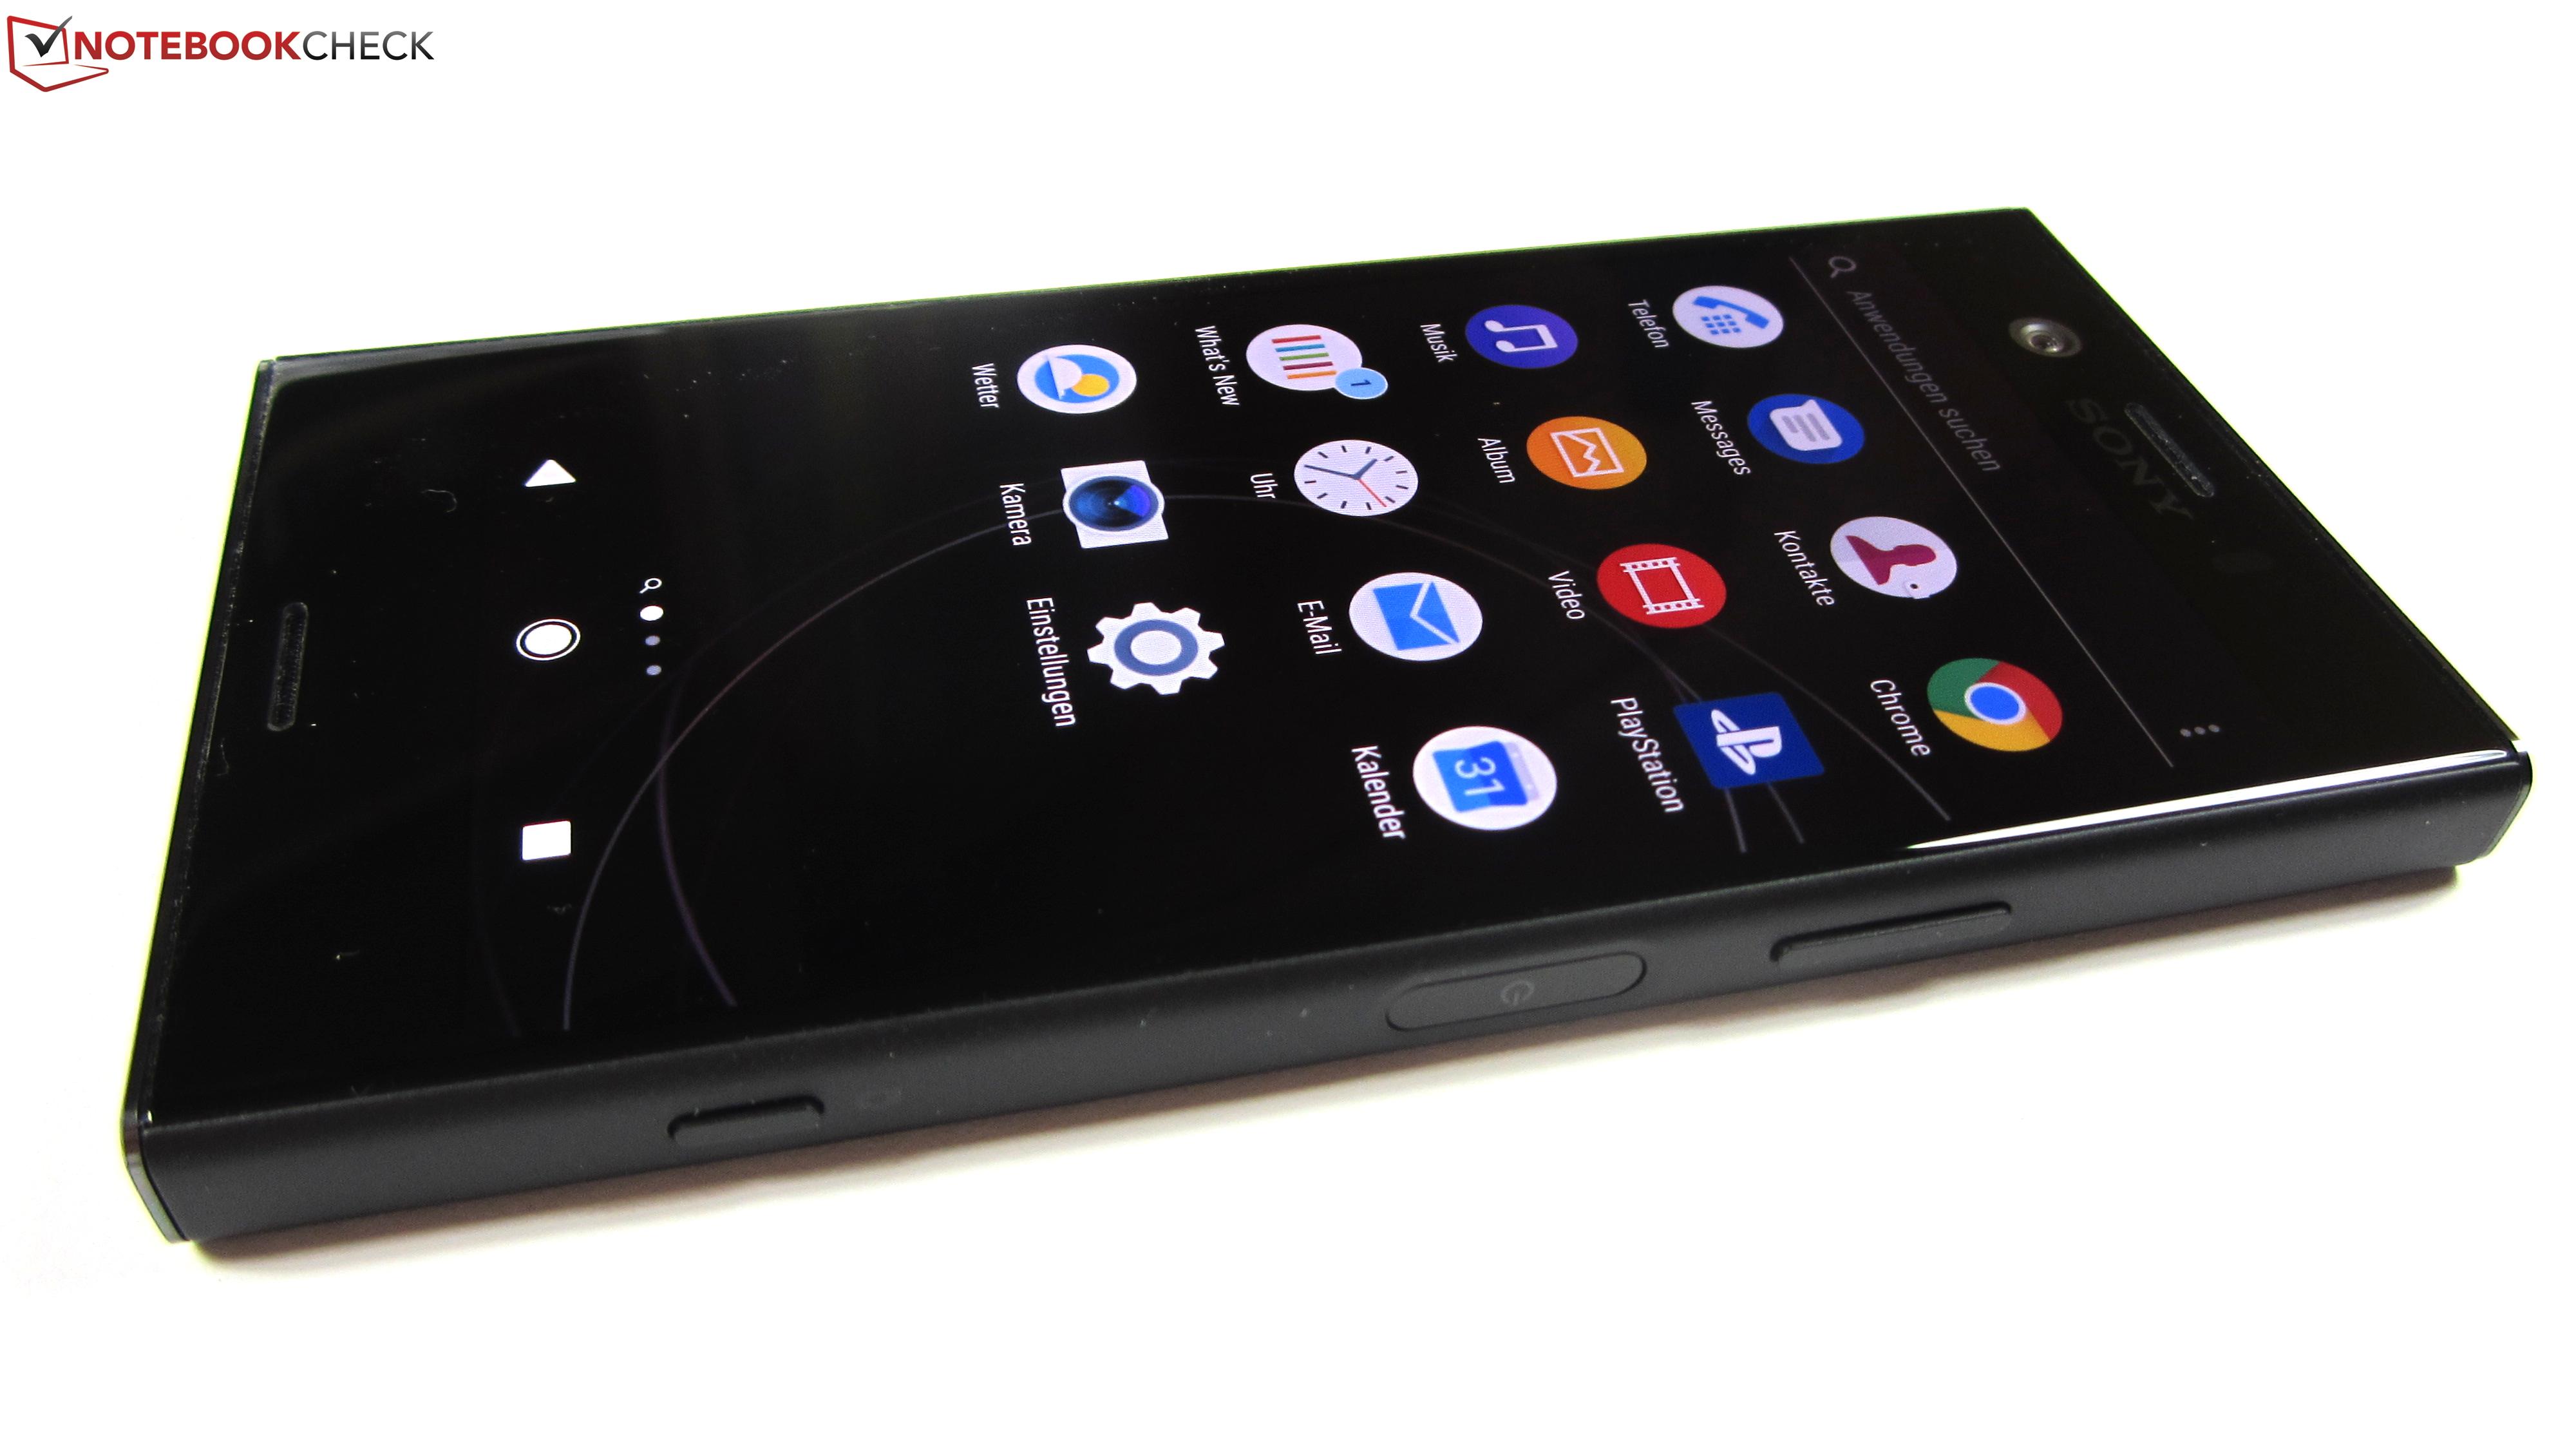 sneakers for cheap 2ba38 88cad Sony Xperia XZ1 Compact Smartphone Review - NotebookCheck.net Reviews